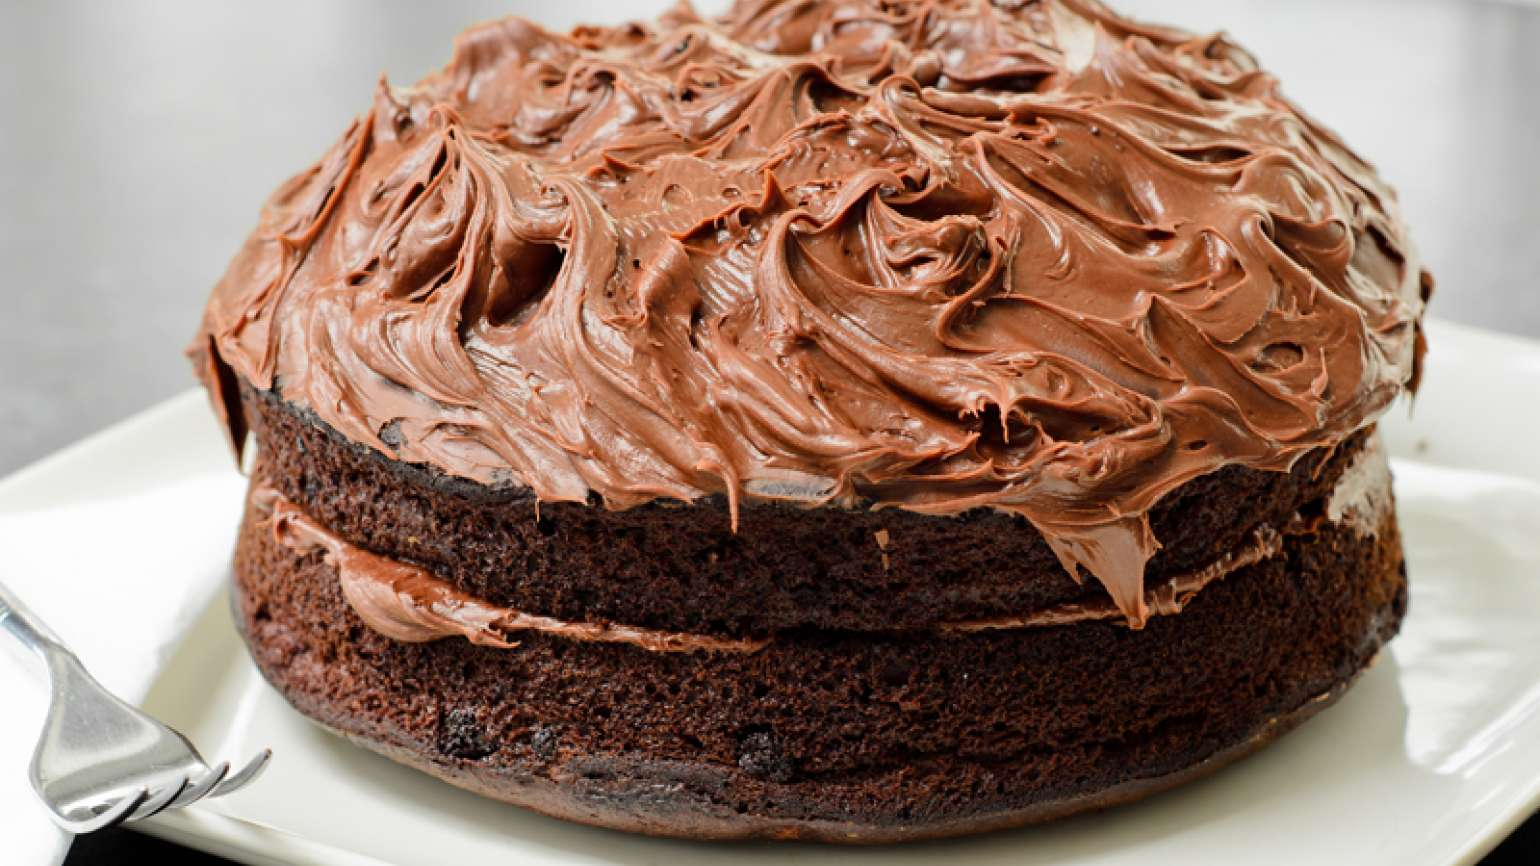 A delicious chocolate cake